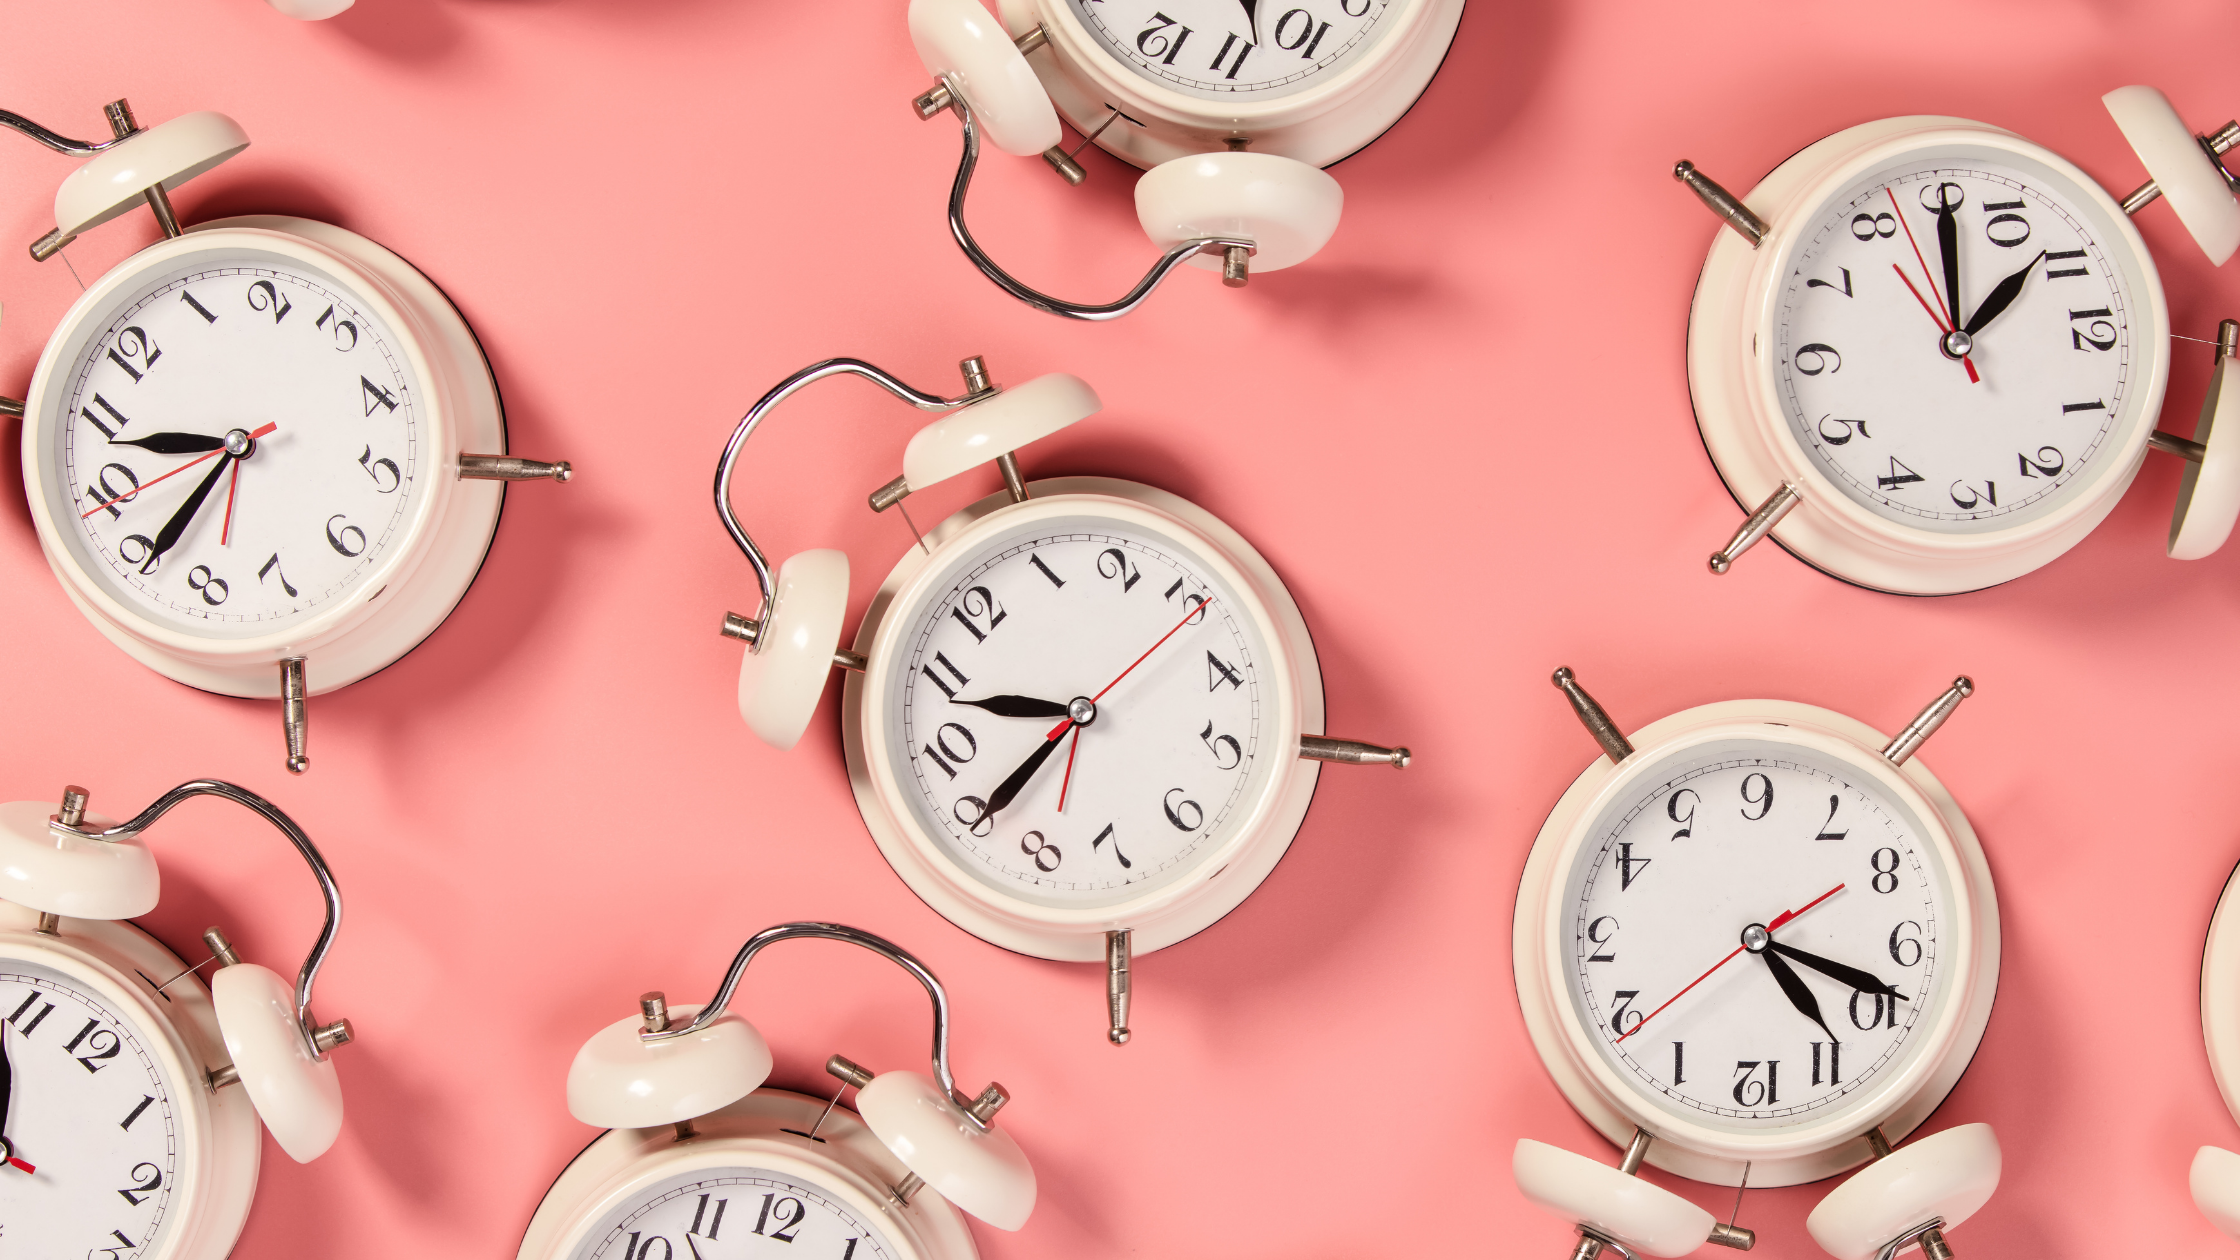 The Best Times to Post on Social Media in 2021, social media, social media management, Best Times to Post on Social Media in 2021